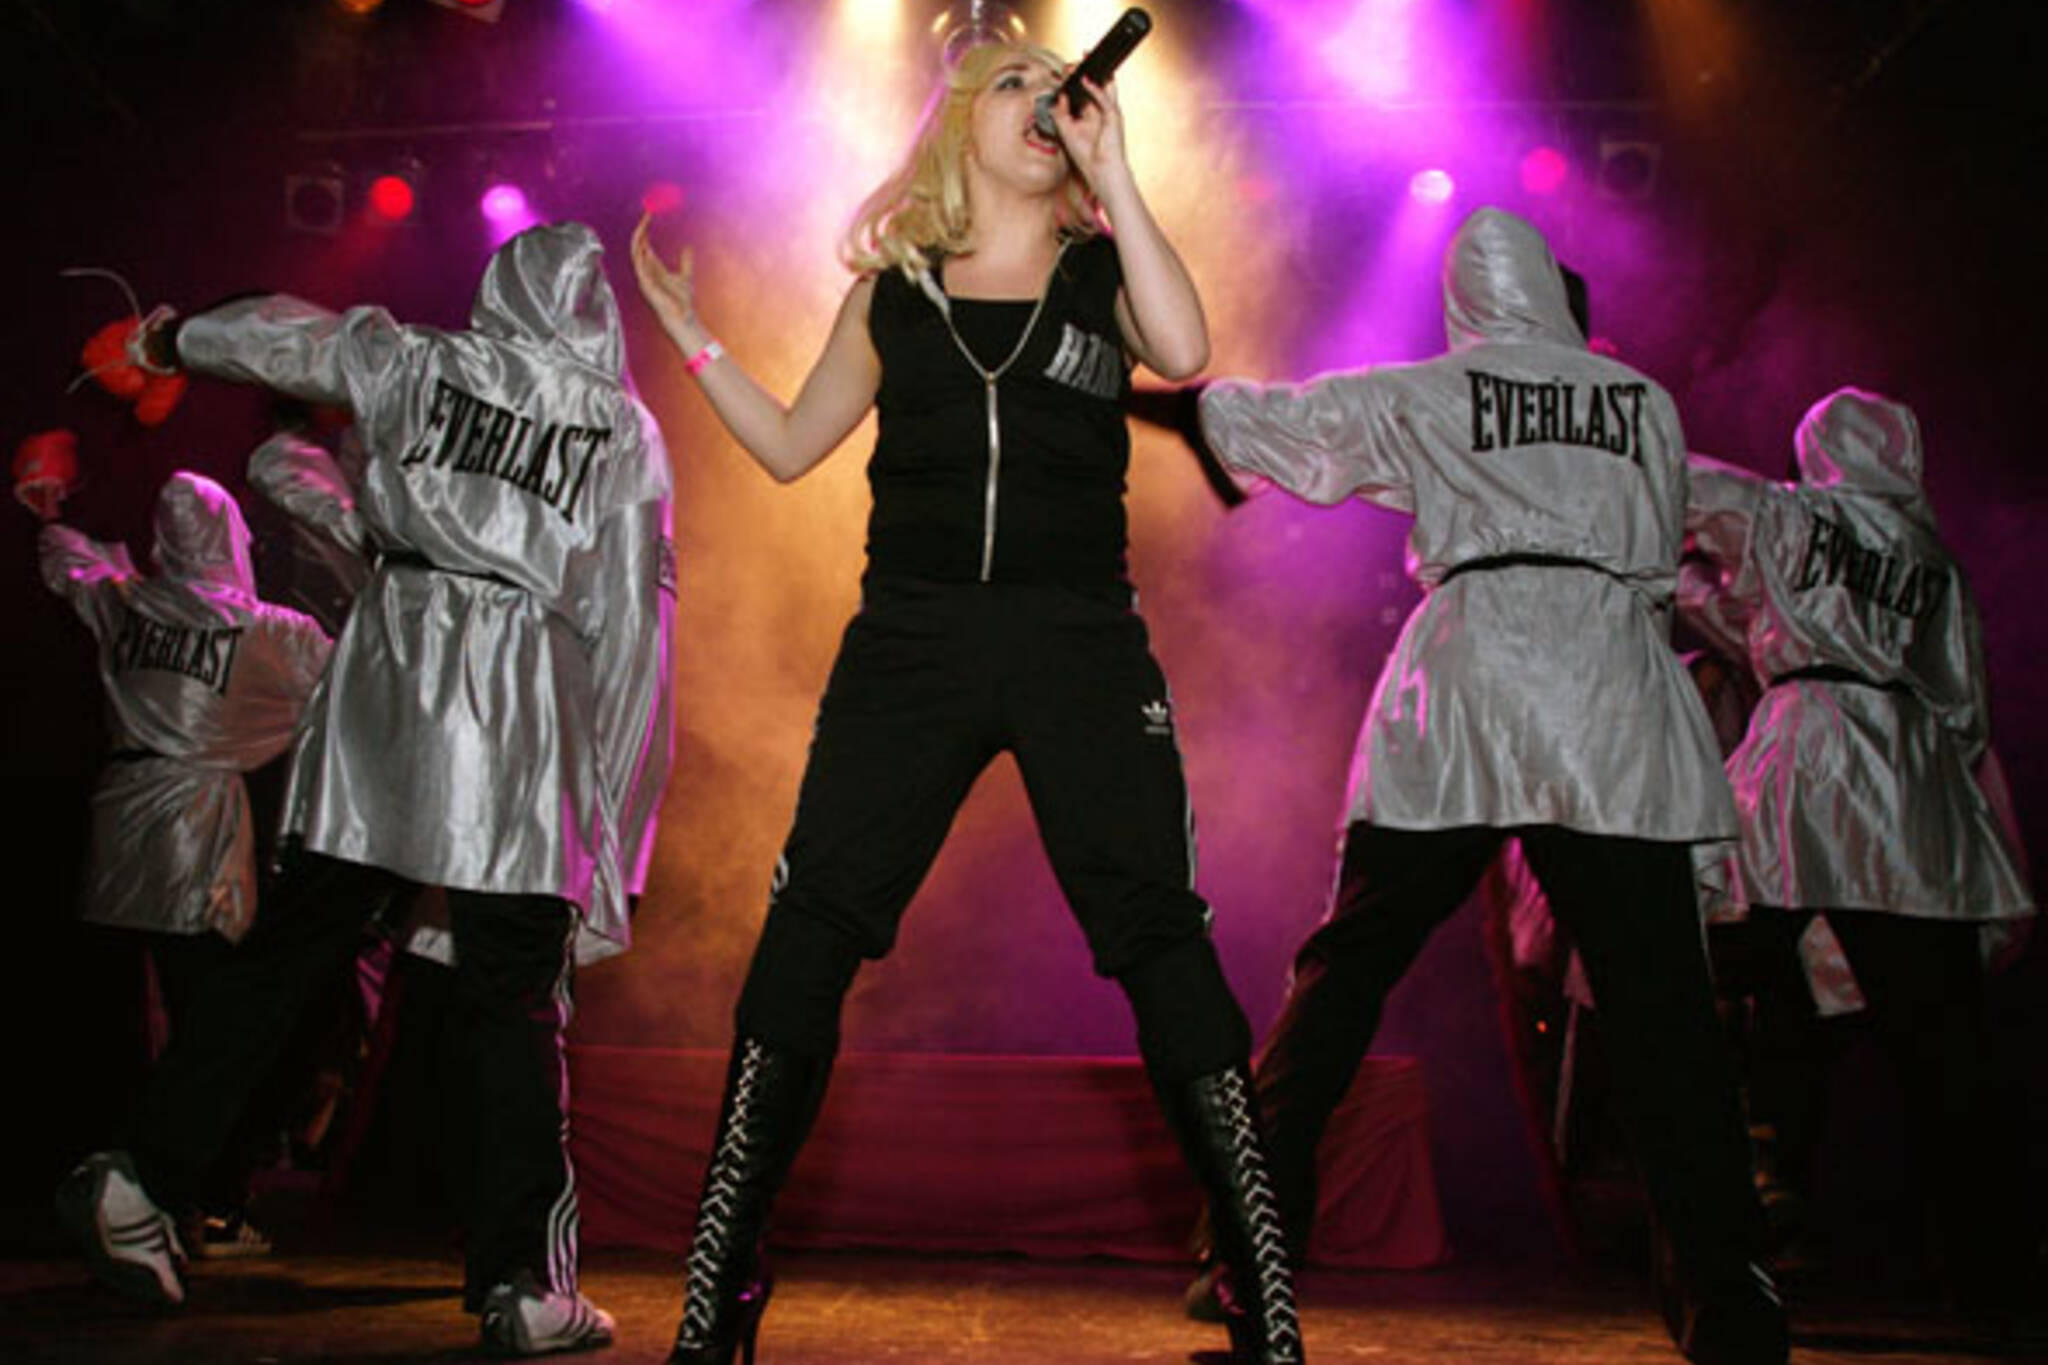 Madonna Tribute Act at Can't Stop Esther at The Phoenix in Toronto